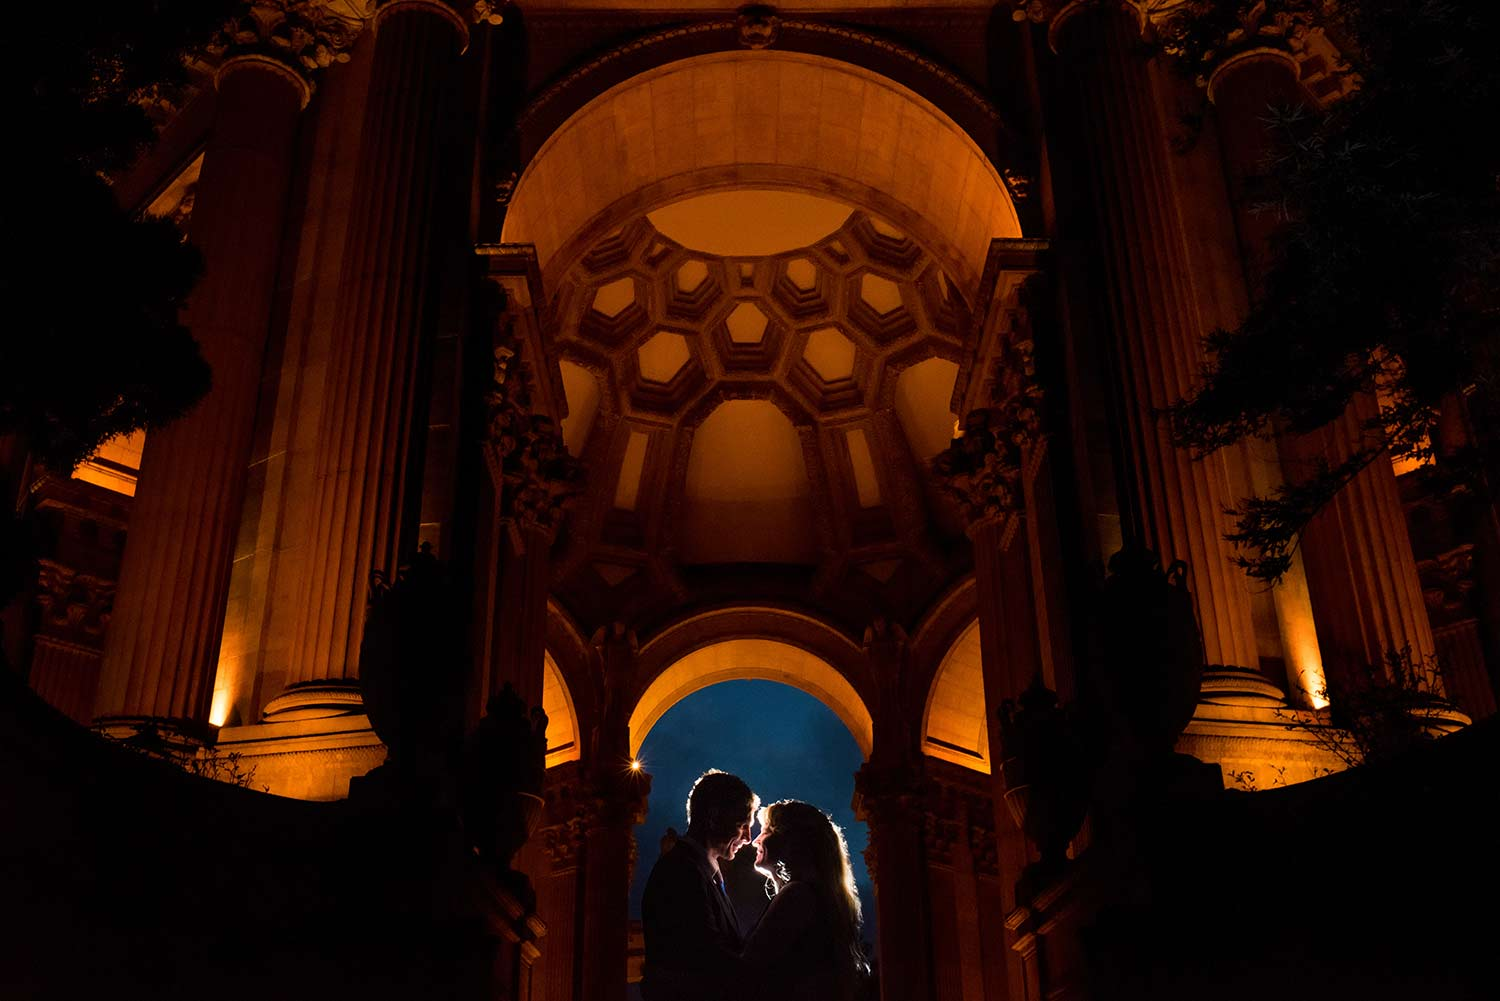 Palace of Fine Arts engagement photography in San Francisco, CA